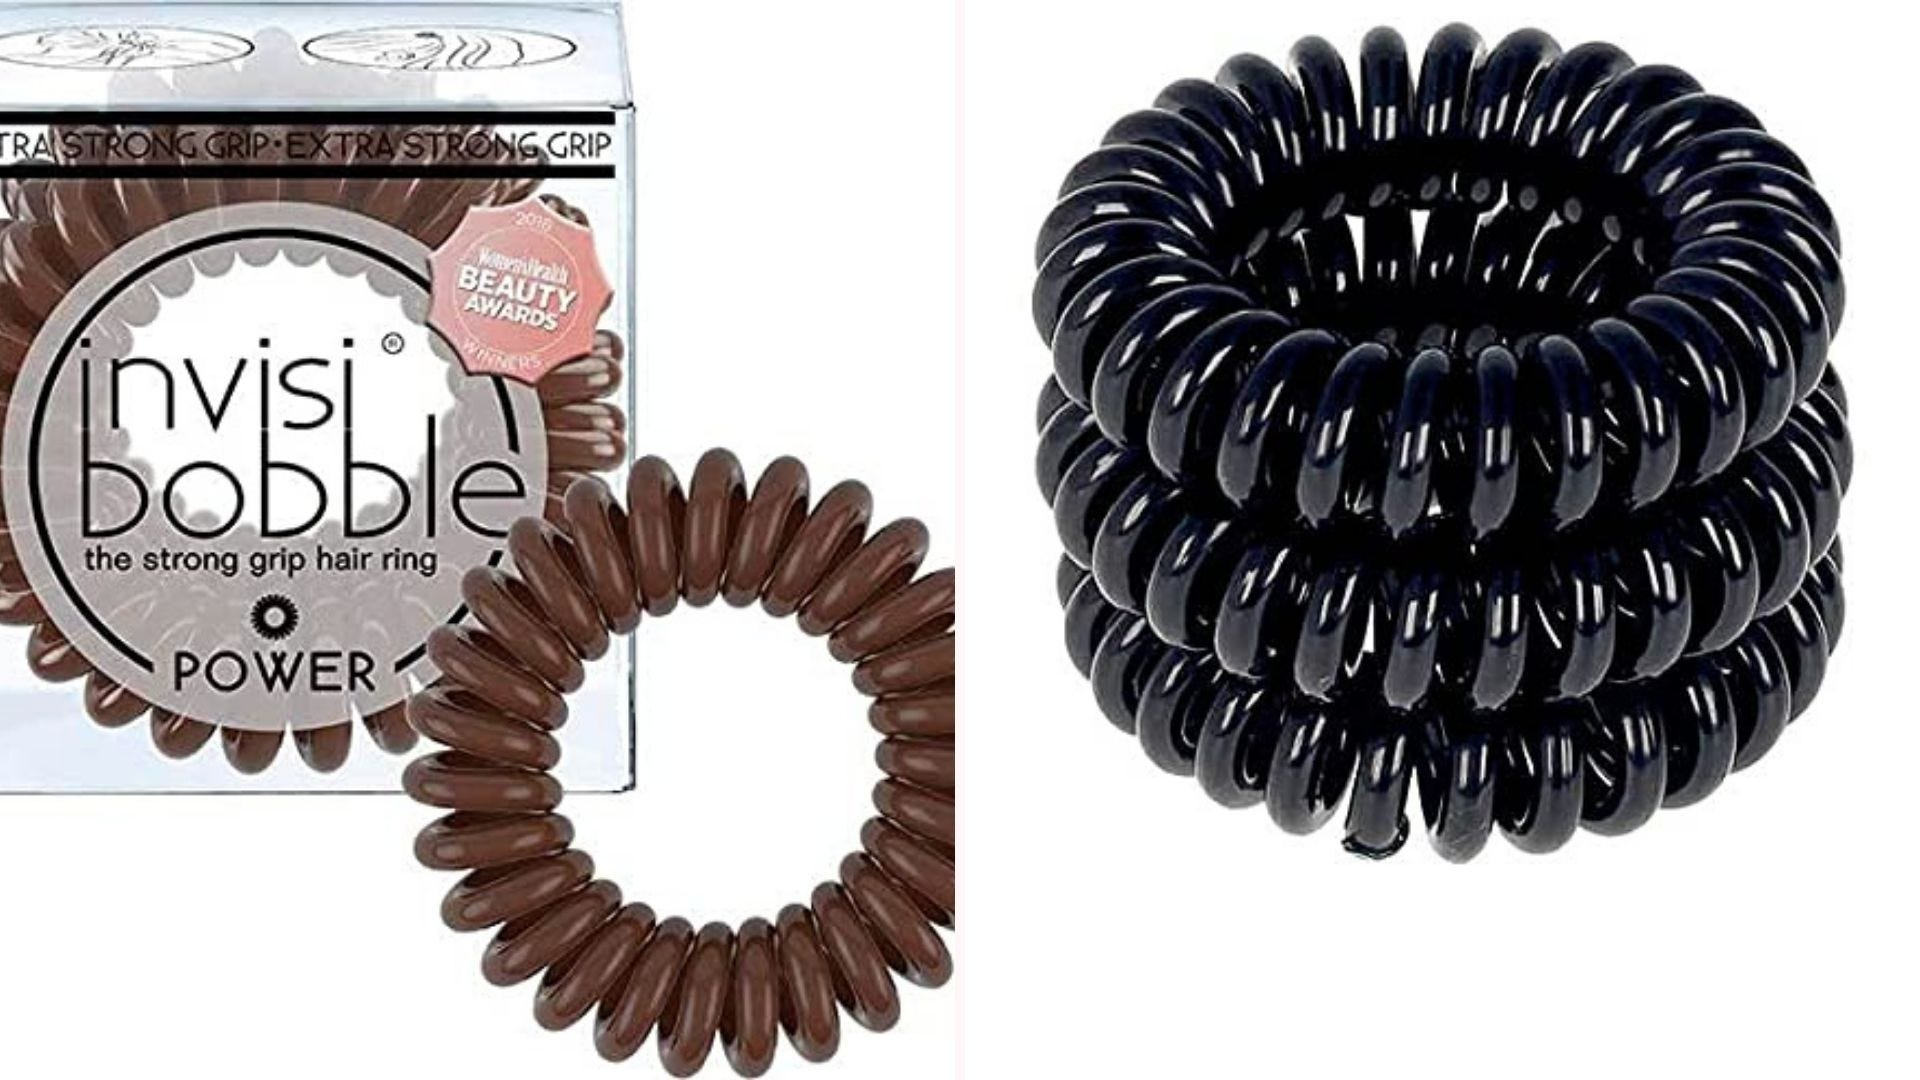 Invisibobble hair ties in brown and black.